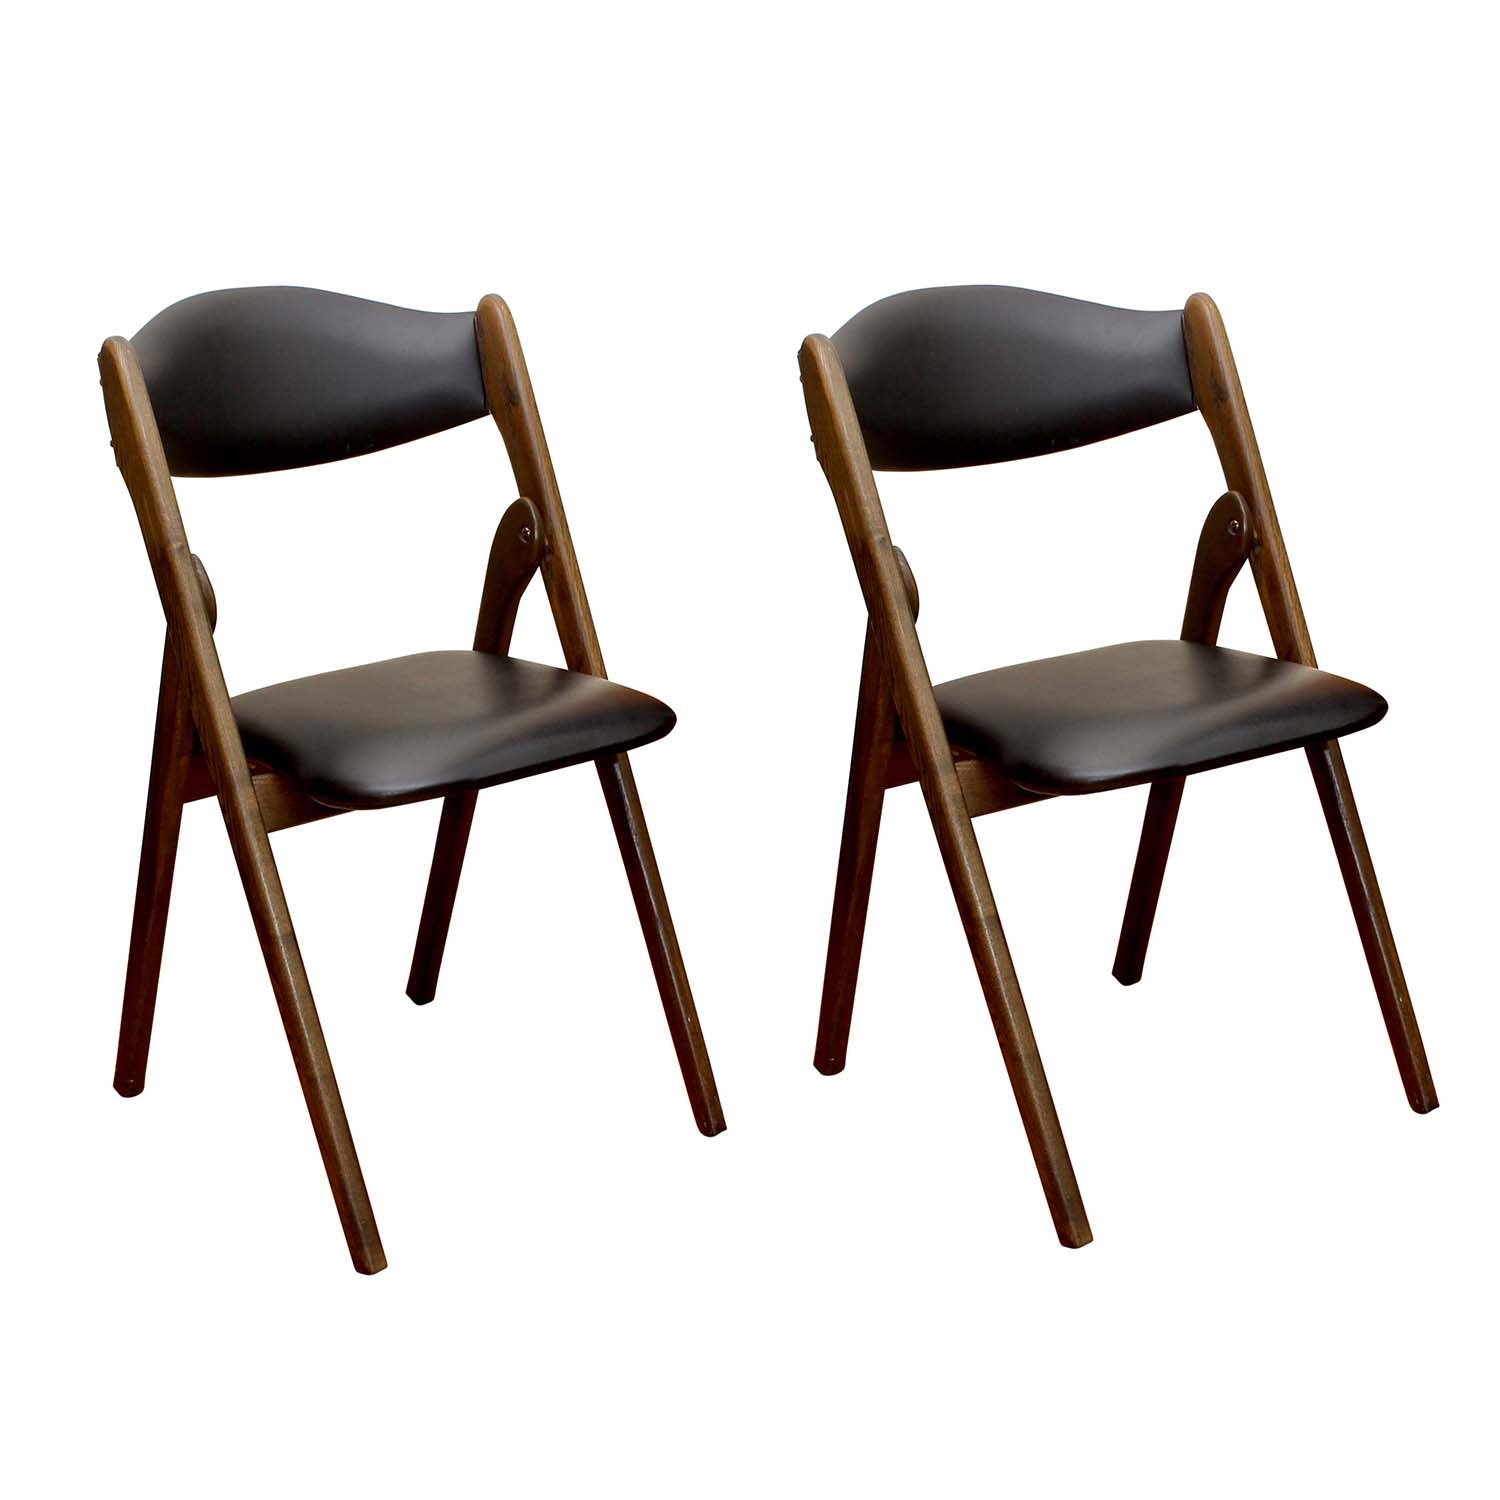 Pair of Willkie Mid-Century Modern Folding Chairs